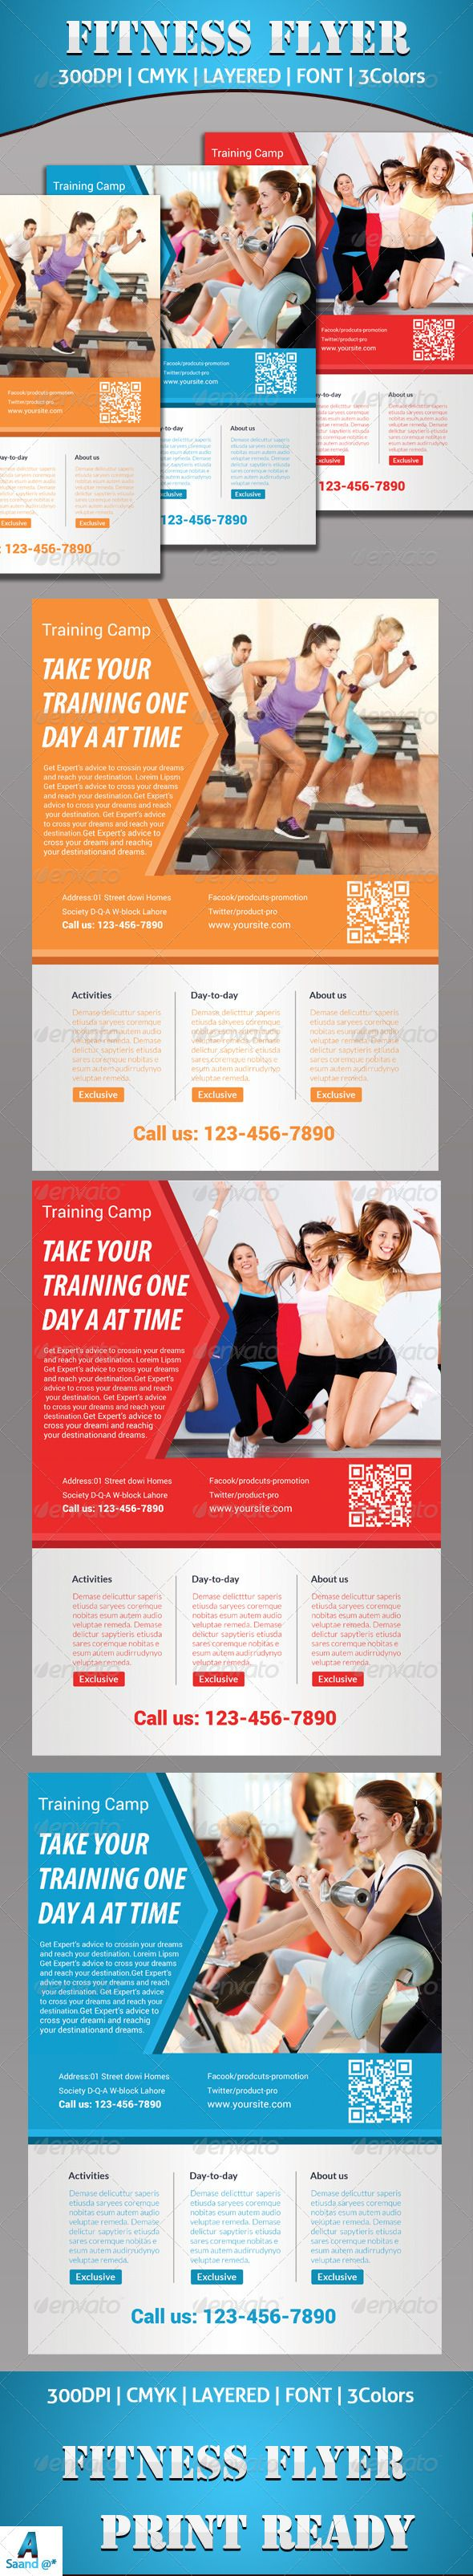 Fitness Flyer  #GraphicRiver        Fitness Flyer Template Fully layered PSD 300 Dpi, CMYK Completely editable, print ready Text/Font or Color can be altered as needed Photos are not included in the file Font File. Fonts:  .fontsquirrel /fonts/roboto  Myrido pro(system font)   Lato Font:  .fontsquirrel /fonts/lato     Created: 20November13 GraphicsFilesIncluded: PhotoshopPSD Layered: Yes MinimumAdobeCSVersion: CS5 PrintDimensions: 210x297 Tags: advert #advertisement #advertising…